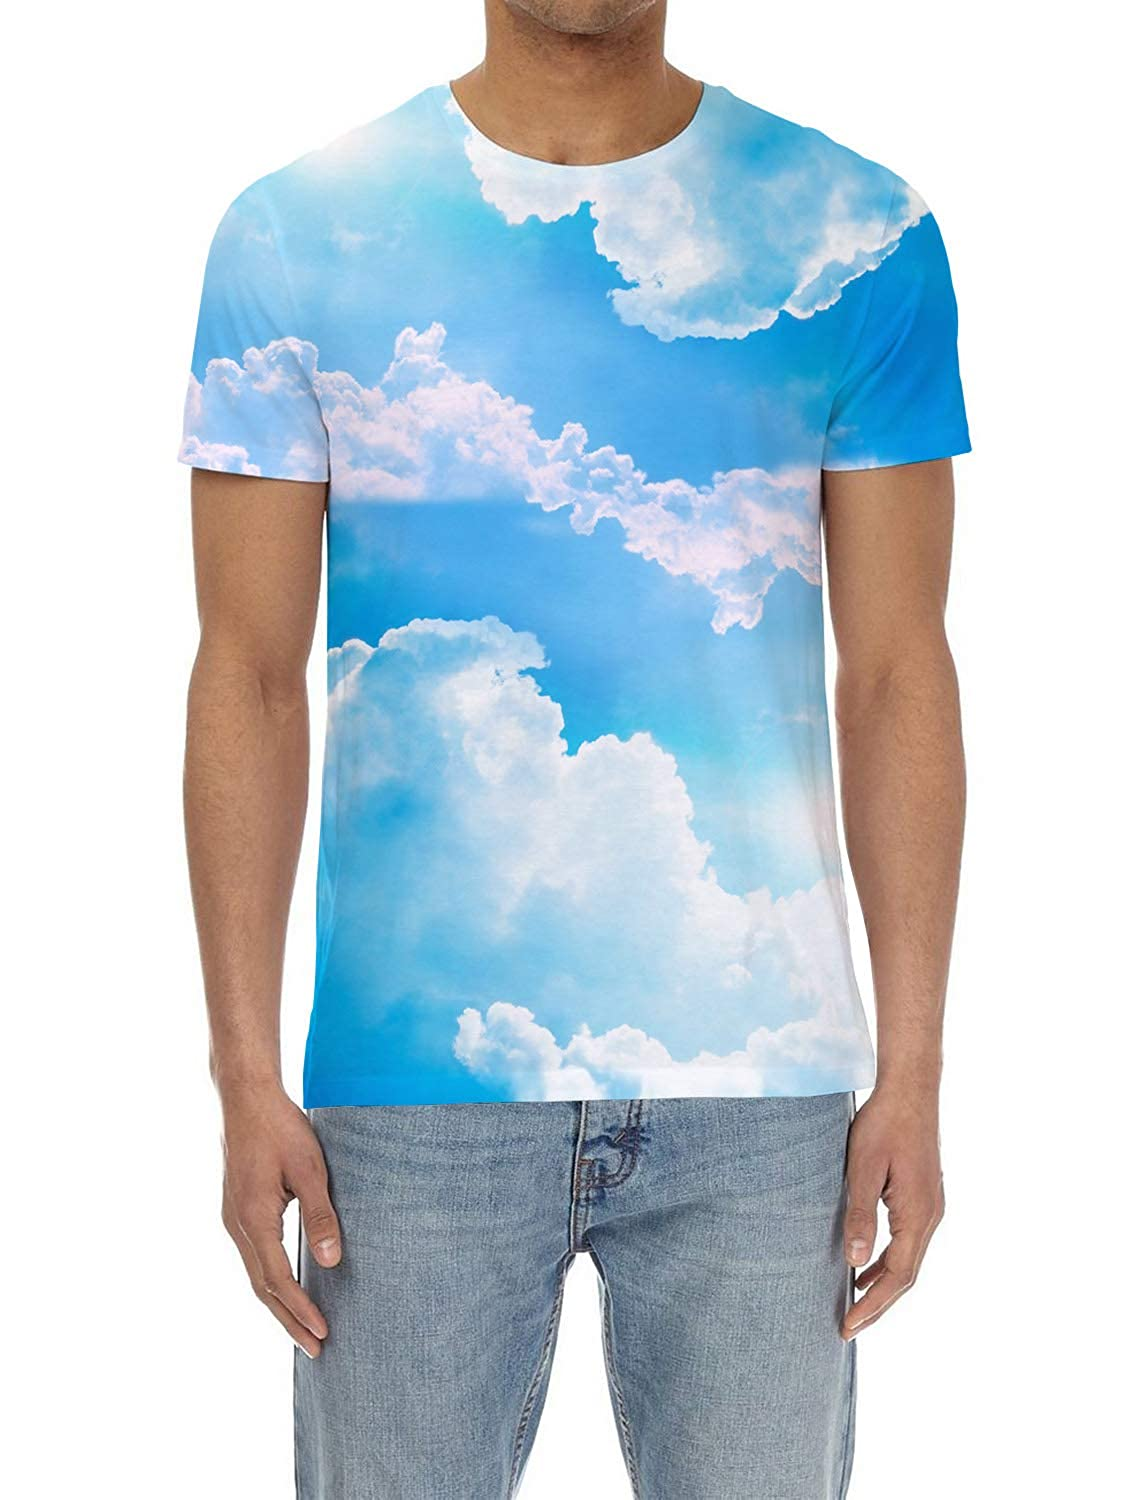 919902fa6 bluee Skyvod6117 Voguard Casual 3D Printed Printed Printed T-Shirt Polyester  Short Sleeve Tops for Men 5b0d18